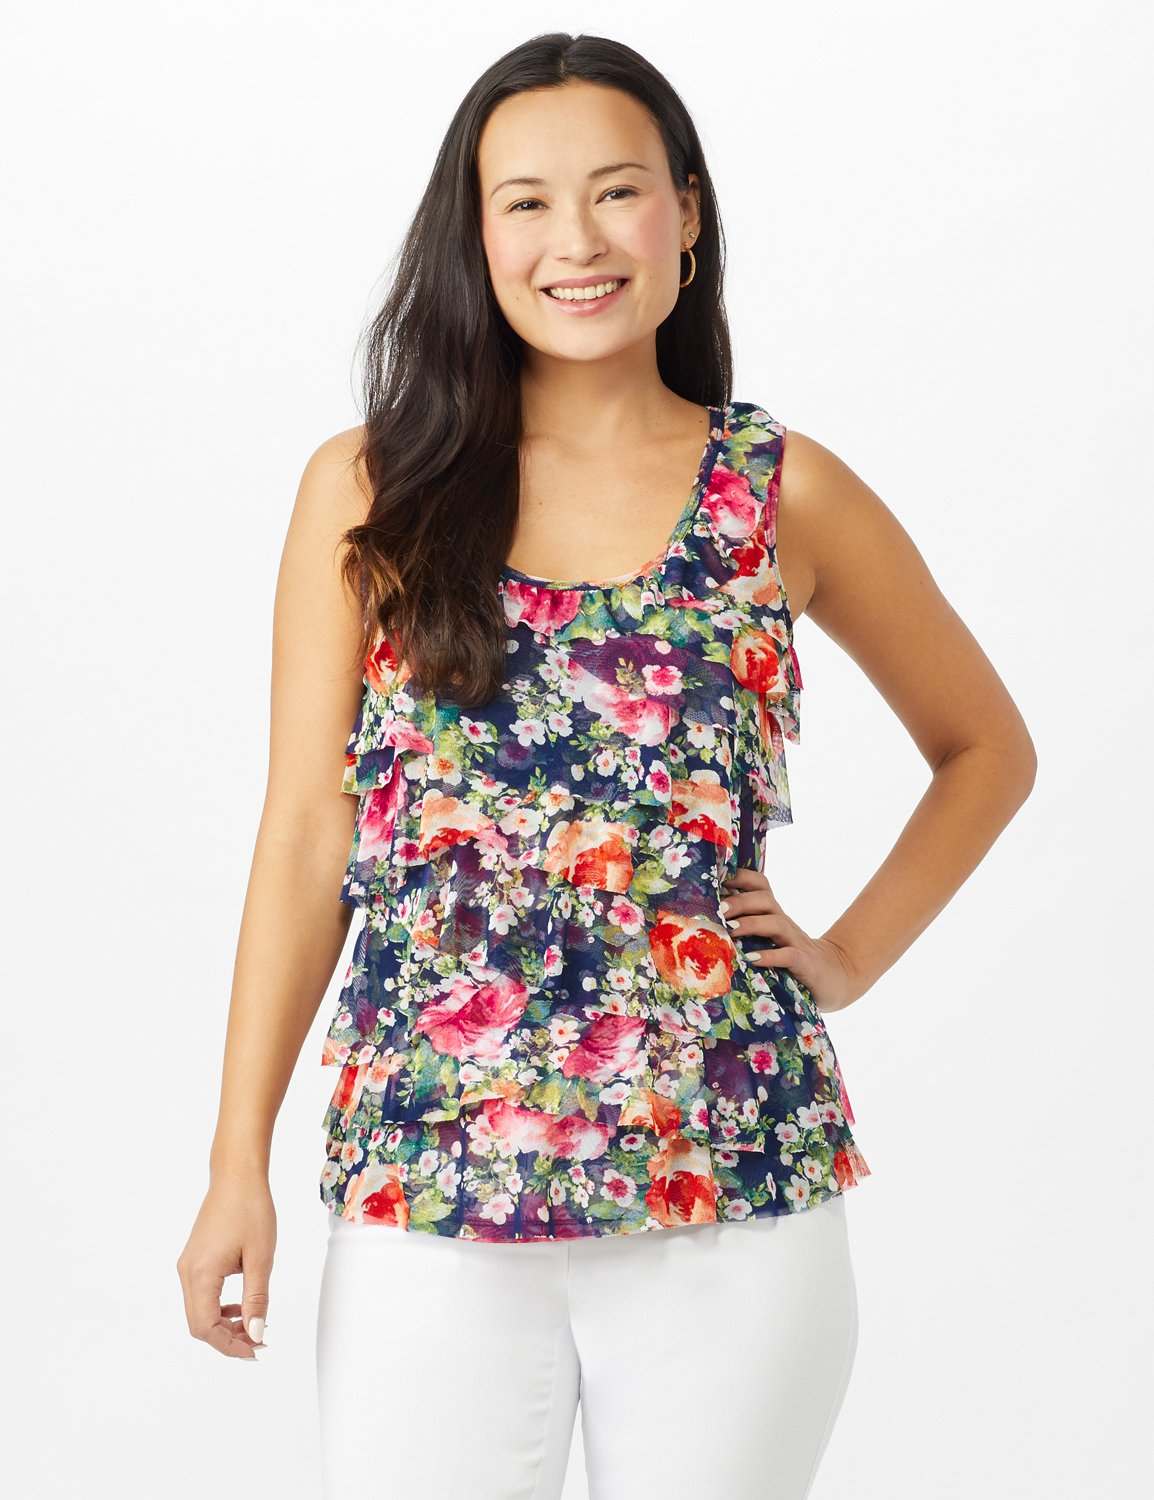 Tie Dye Mesh Ruffle Knit Top - Misses -Navy - Front